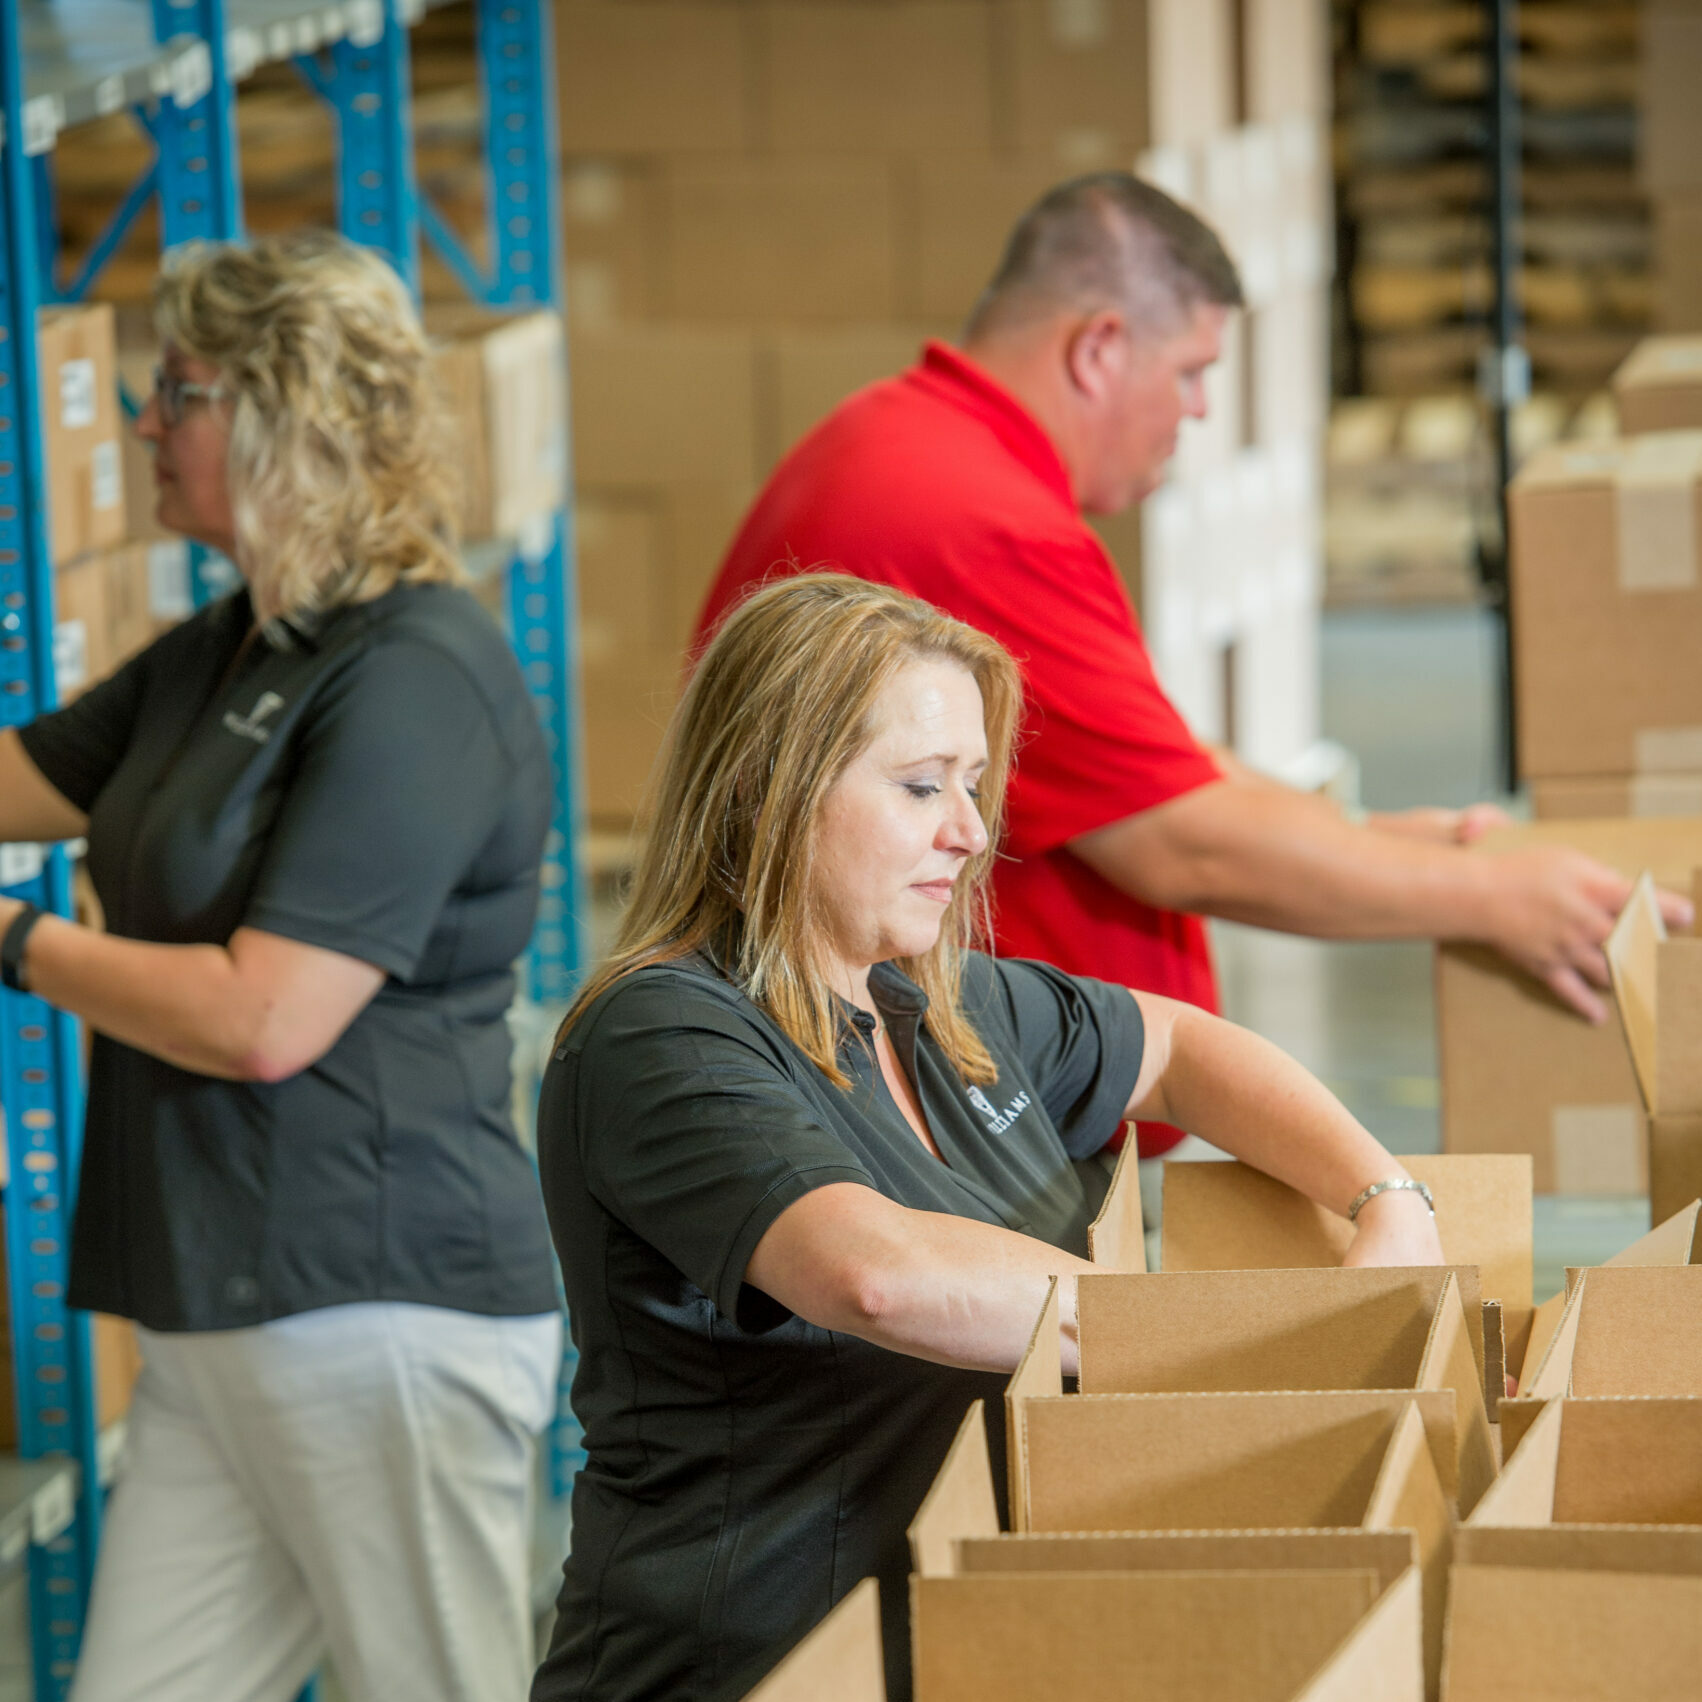 Direct Order Fulfillment Services